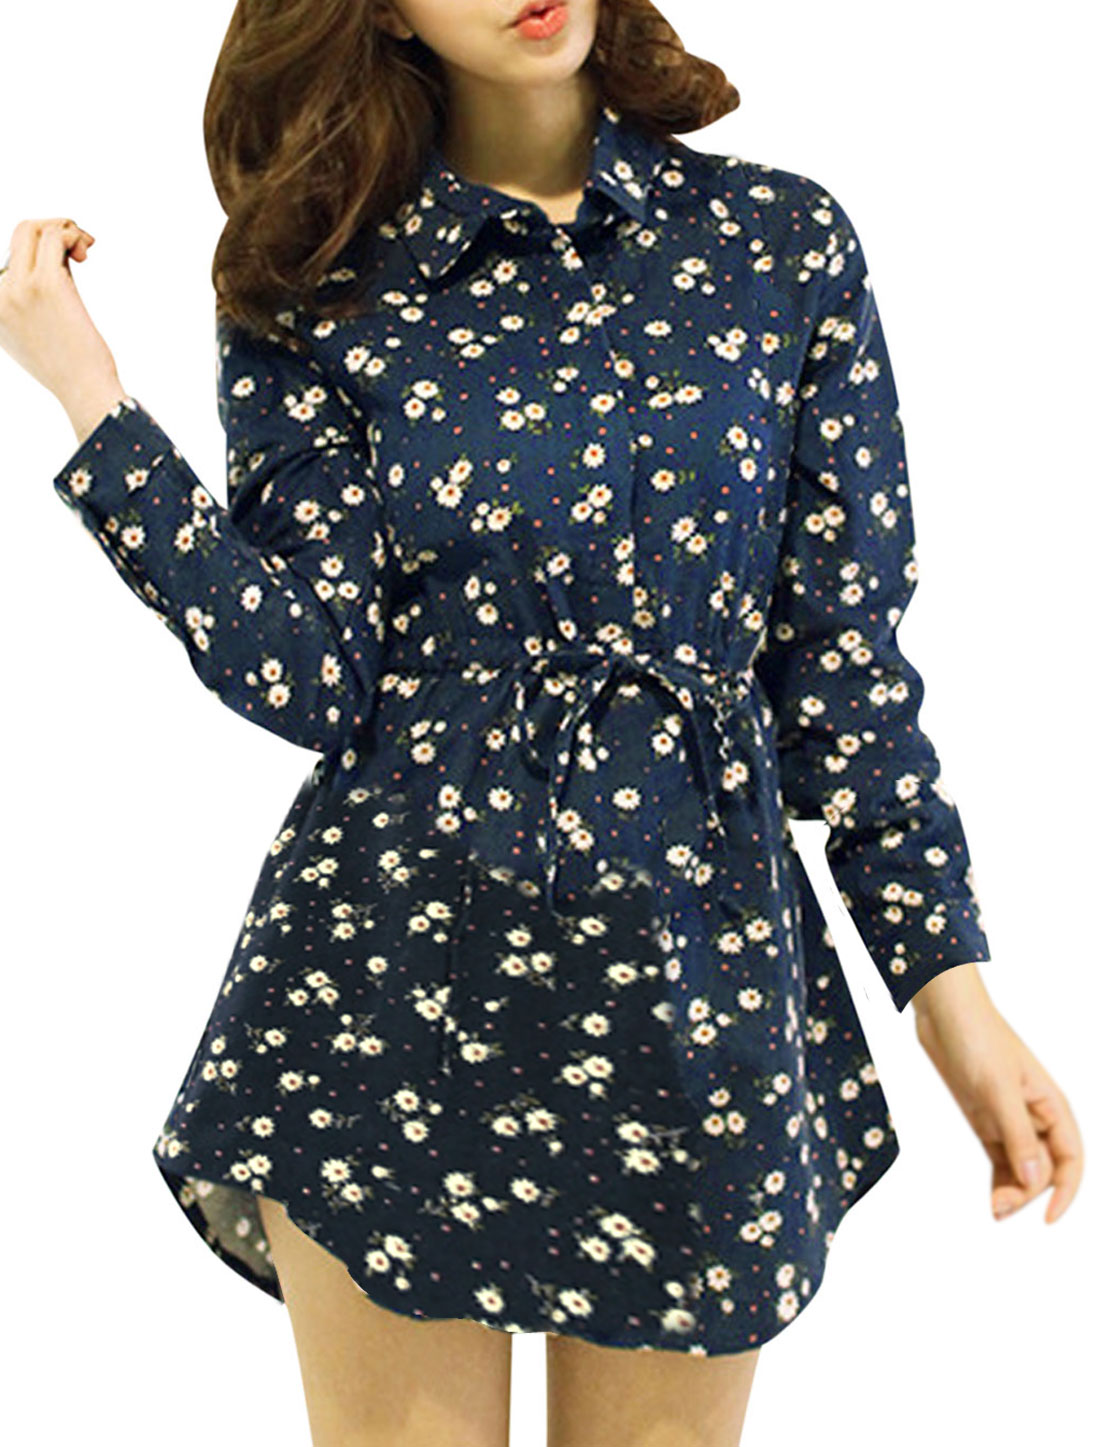 Lady Point Collar Long Sleeve 1/2 Placket Floral Prints Shirt Dress Navy Blue S